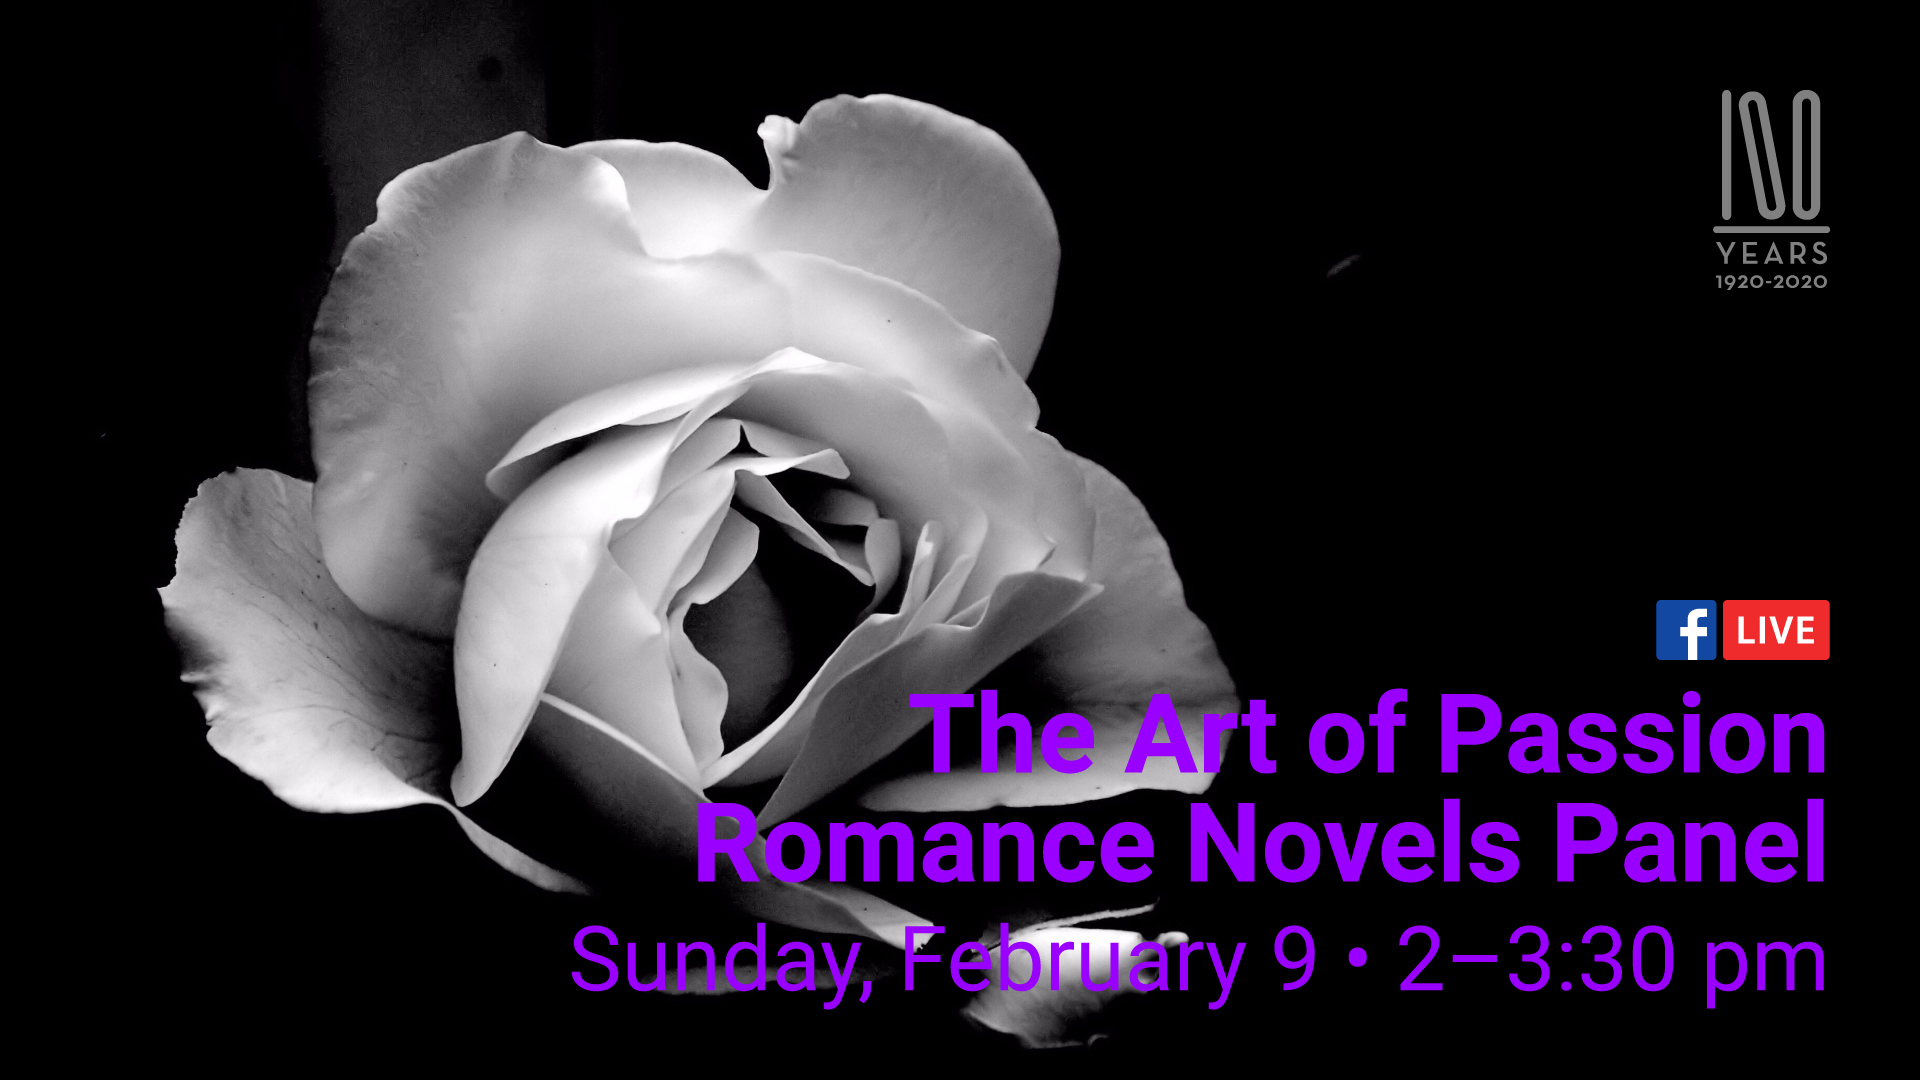 The Art of Passion Romance Novels Panel